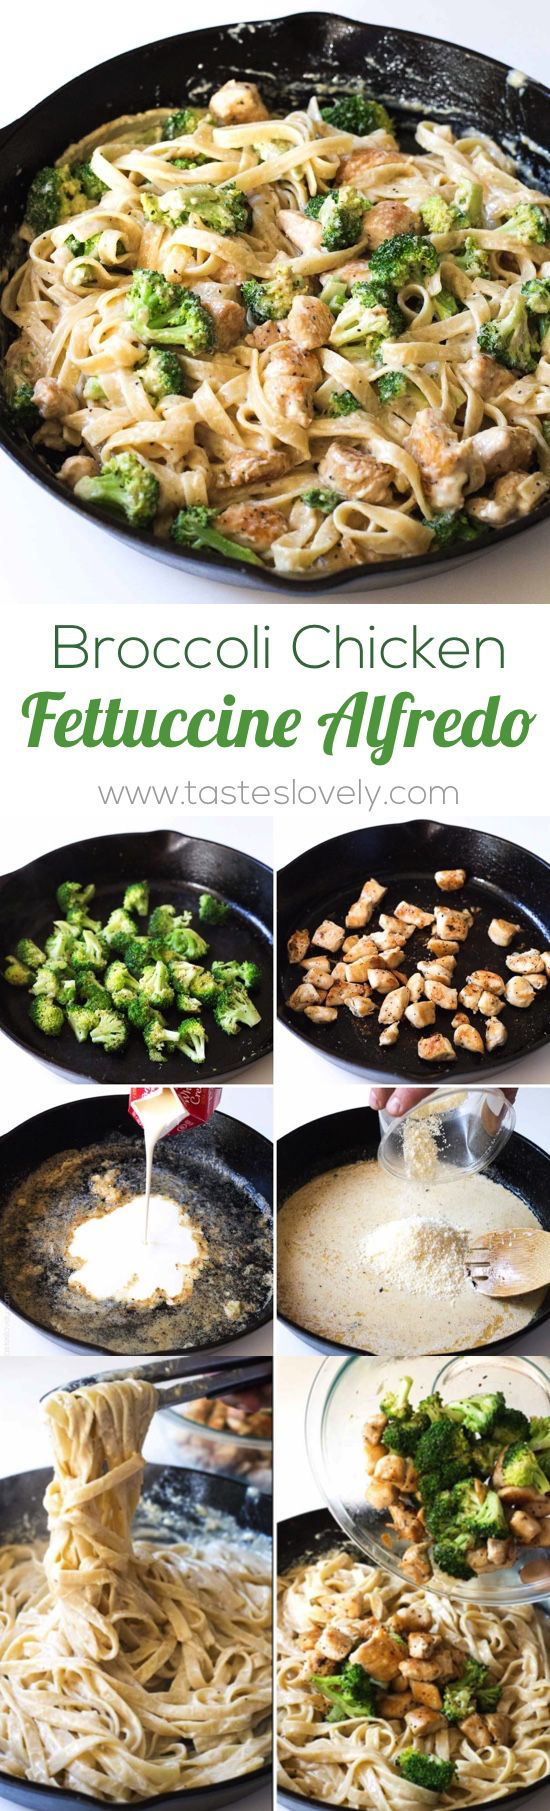 Broccoli Chicken Fettuccine Alfredo - 30 minute 1 skillet dinner